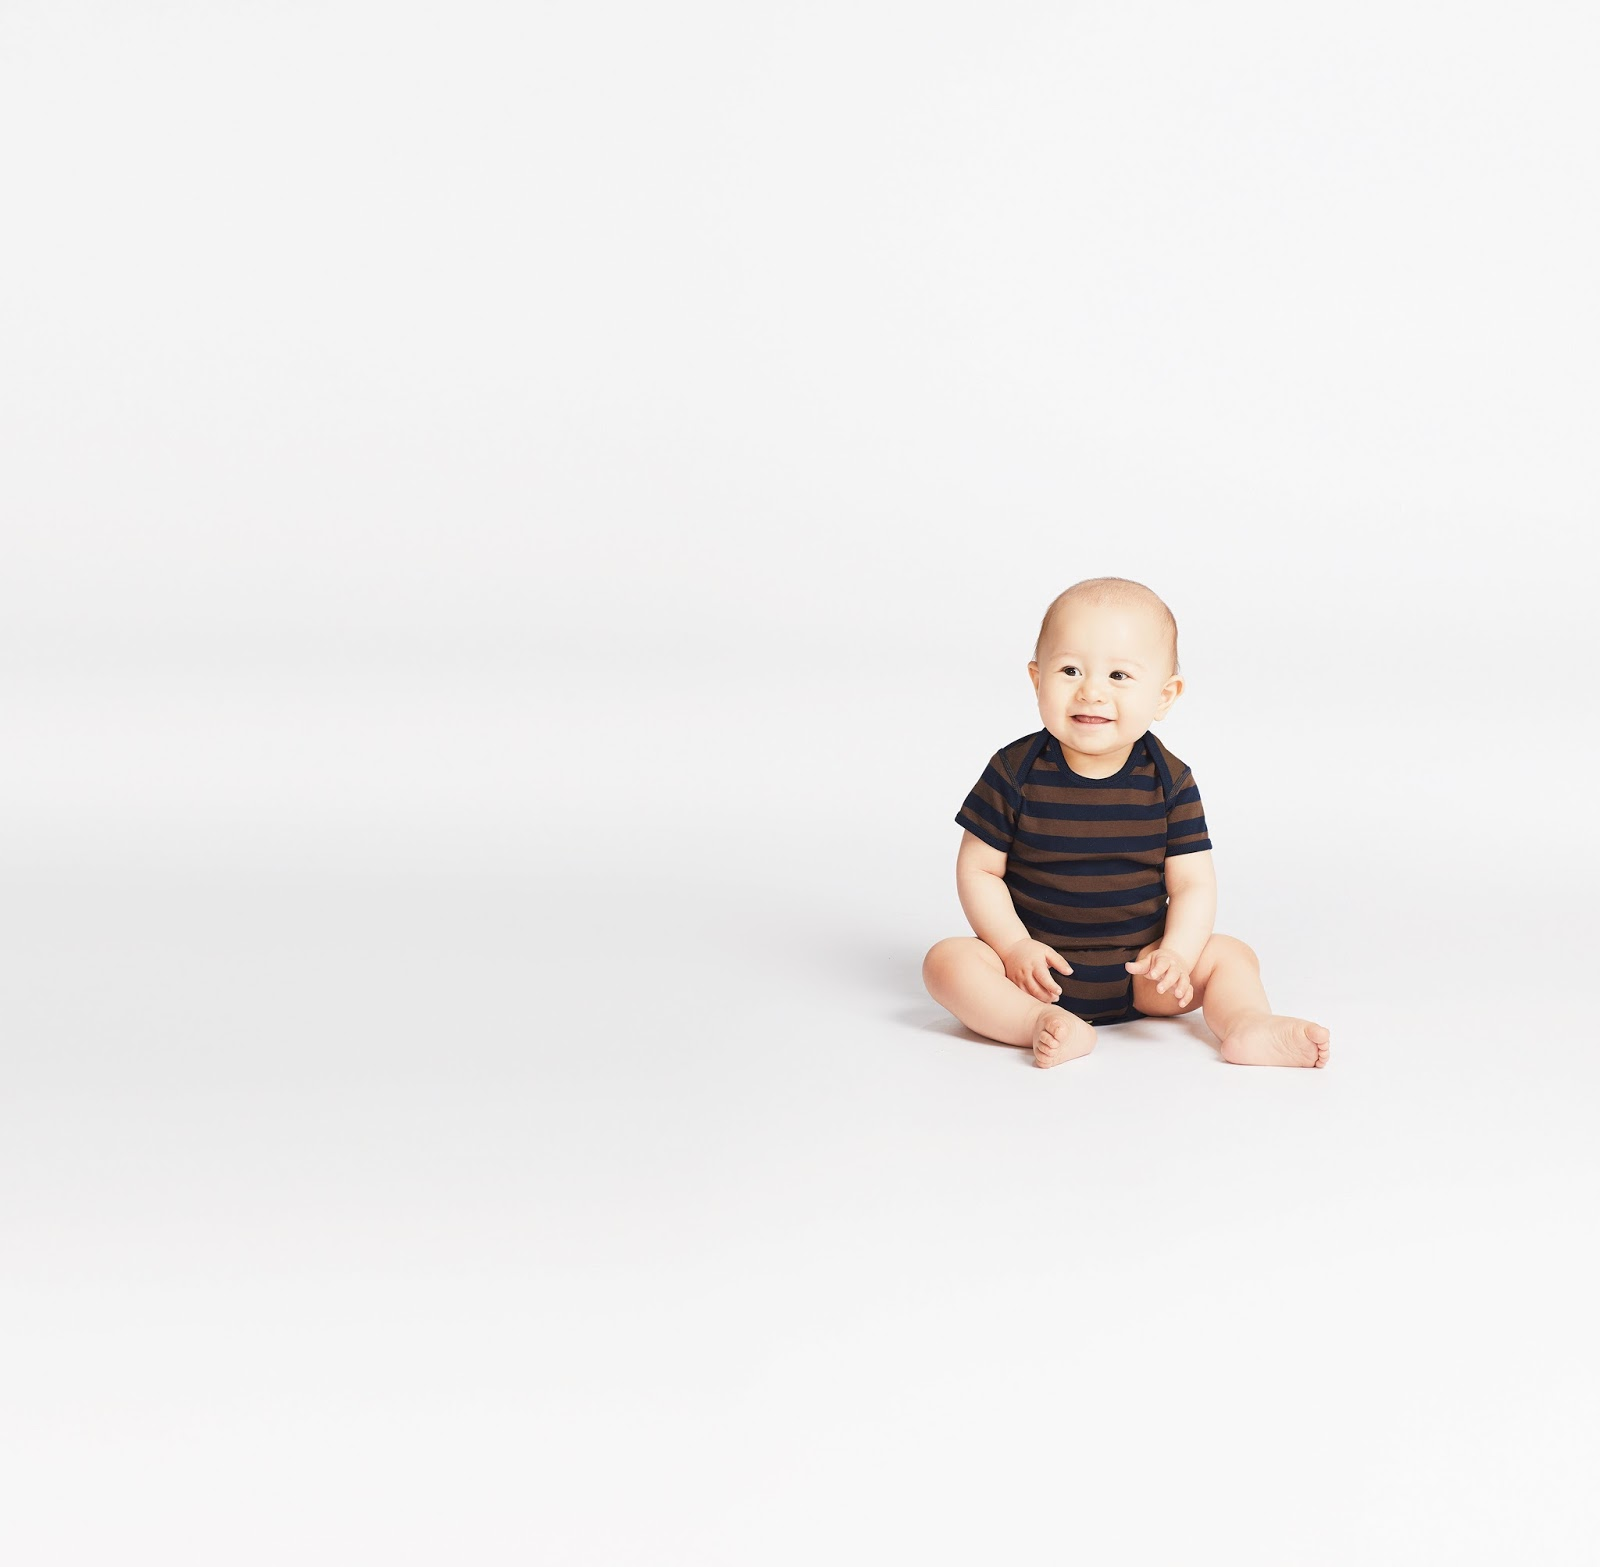 b00a65a7cefc42 This season, UNIQLO finally introduces a much awaited line to its LifeWear  line: the MATERNITY COLLECTION!